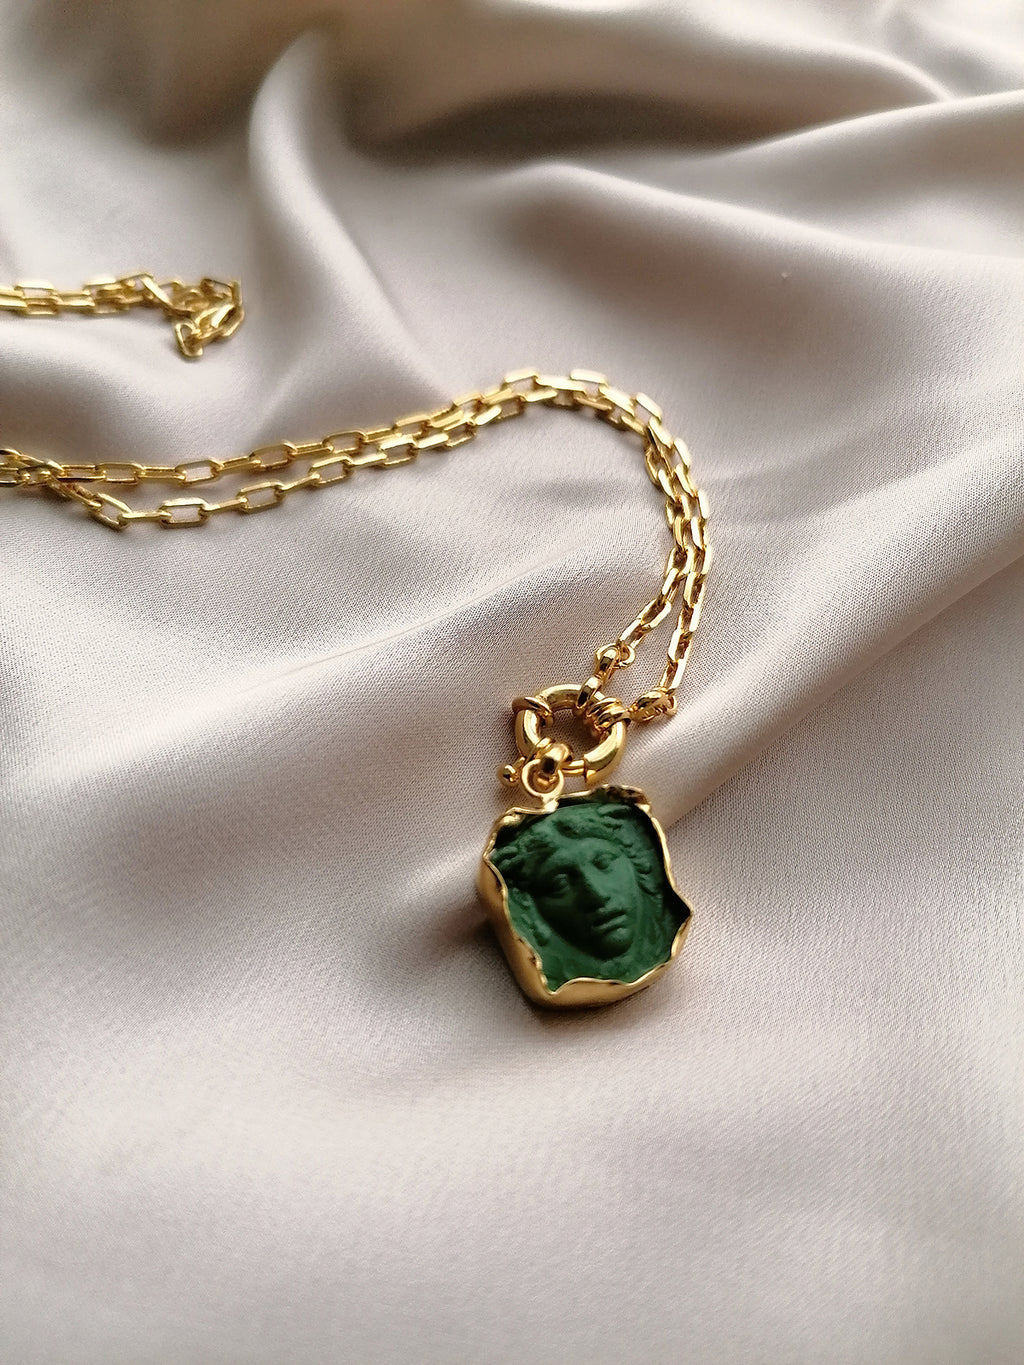 GREEN MEDUSA NECKLACE